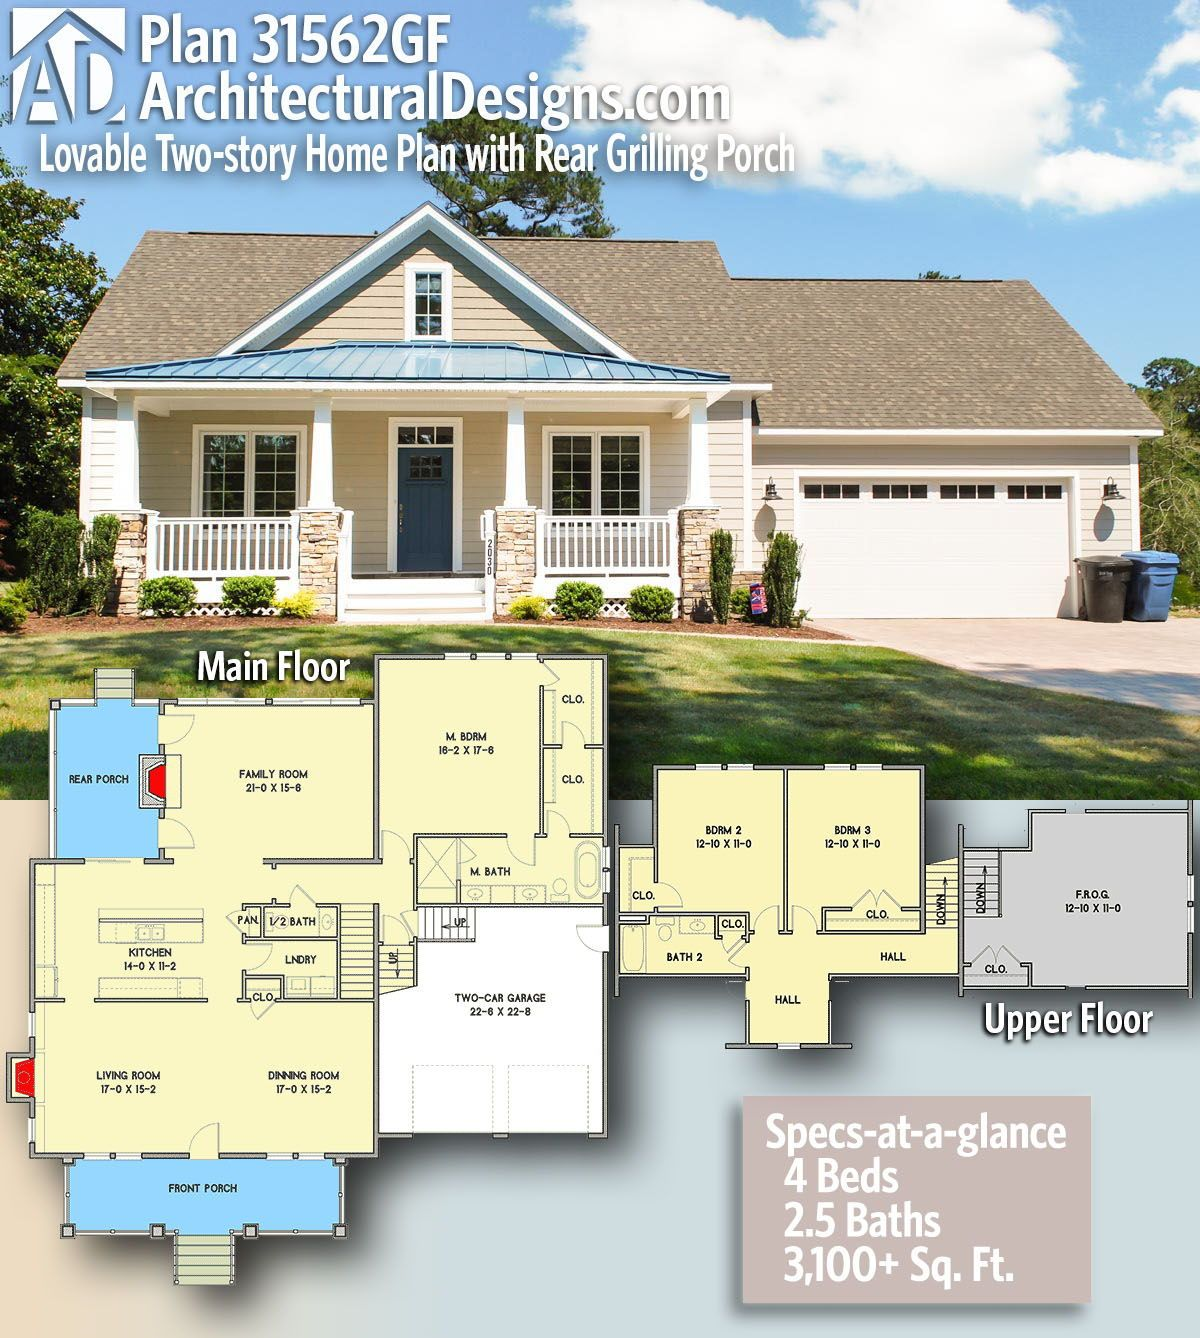 Plan 31562gf Lovable Two Story Home Plan With Rear Grilling Porch House Plans Bungalow Style House Plans How To Plan